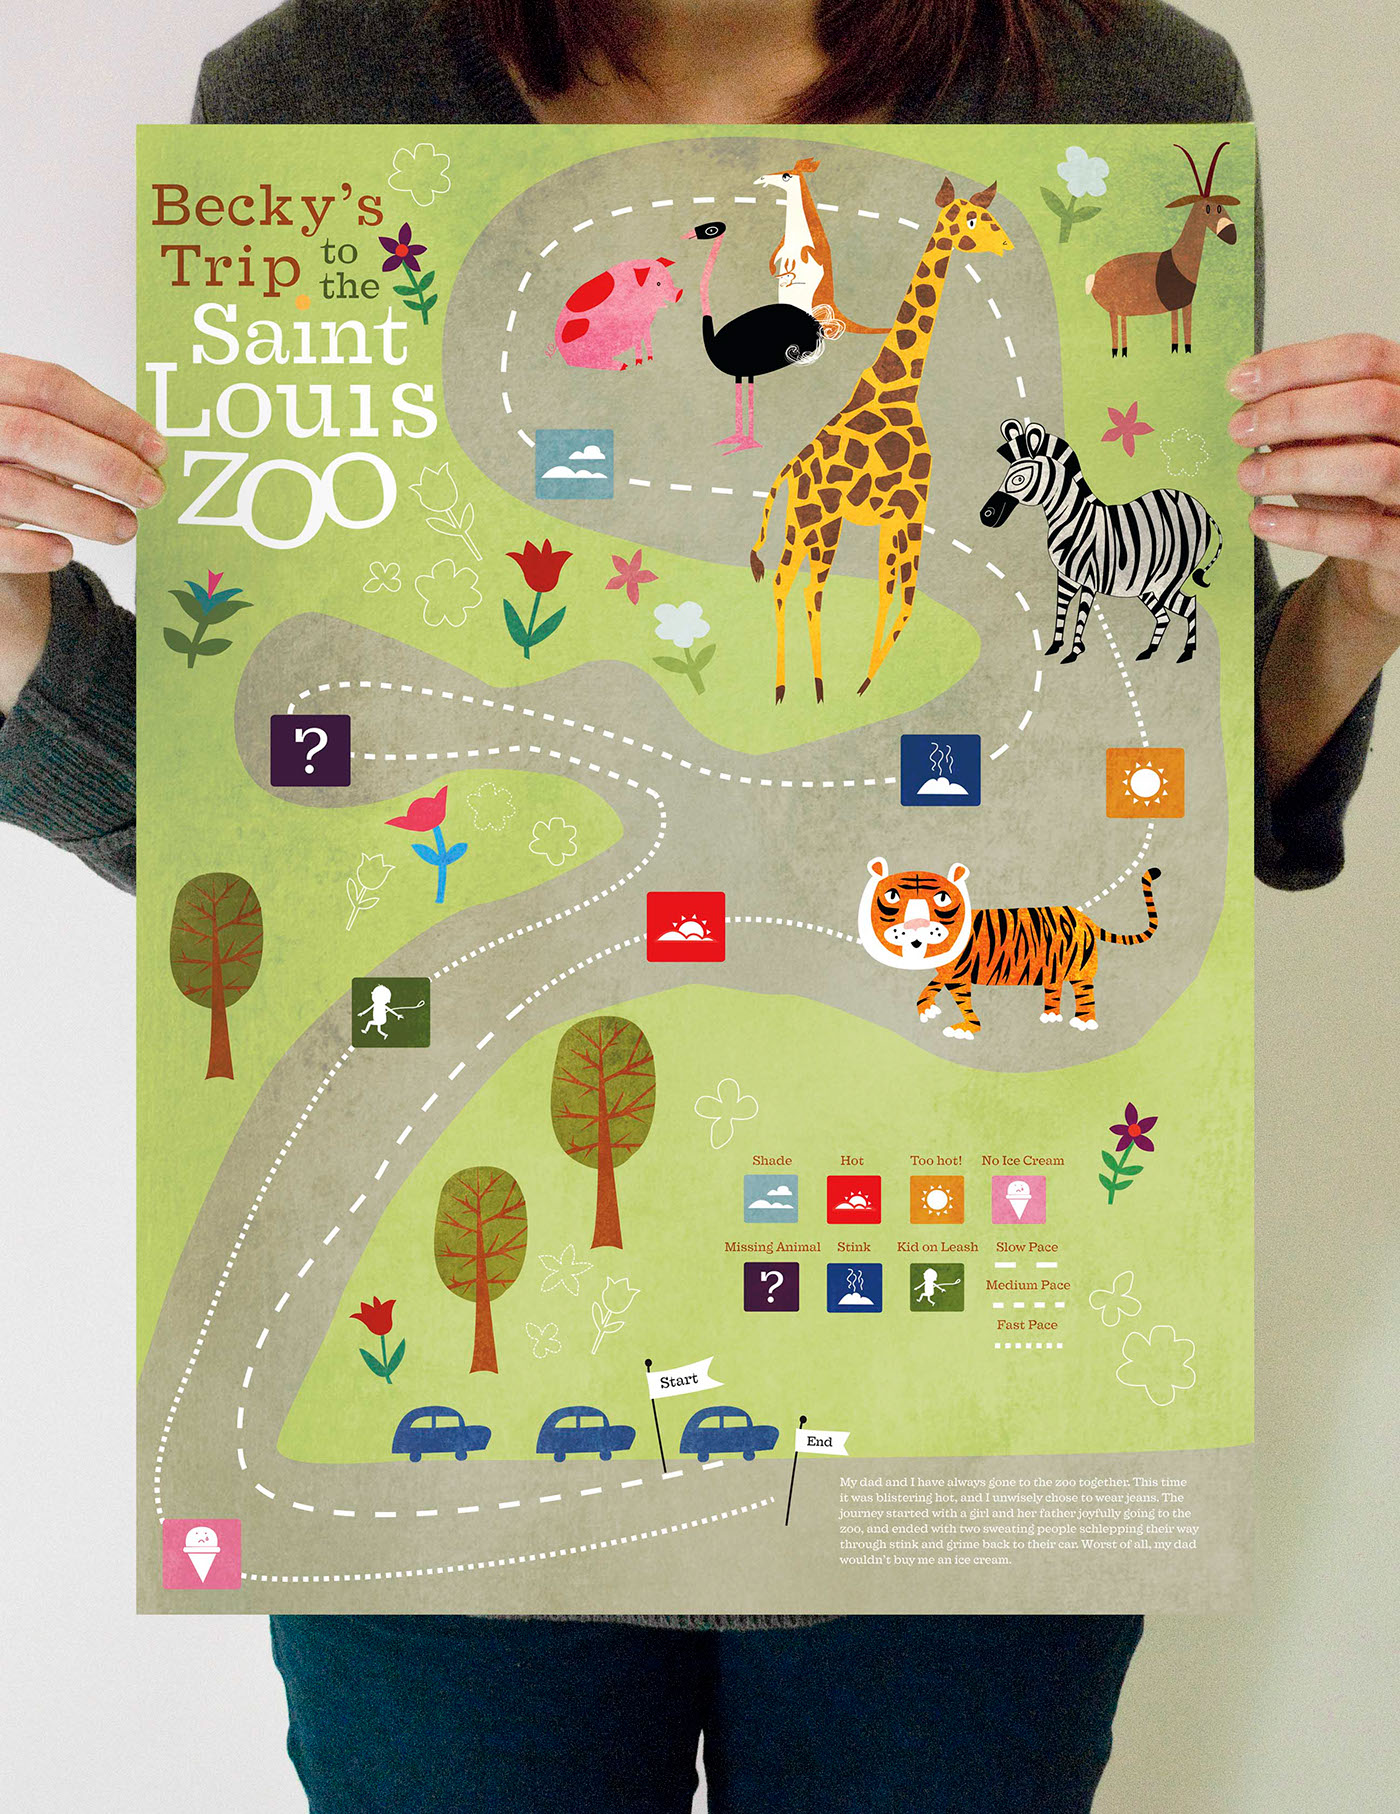 St. Louis Zoo Experience Map on Behance